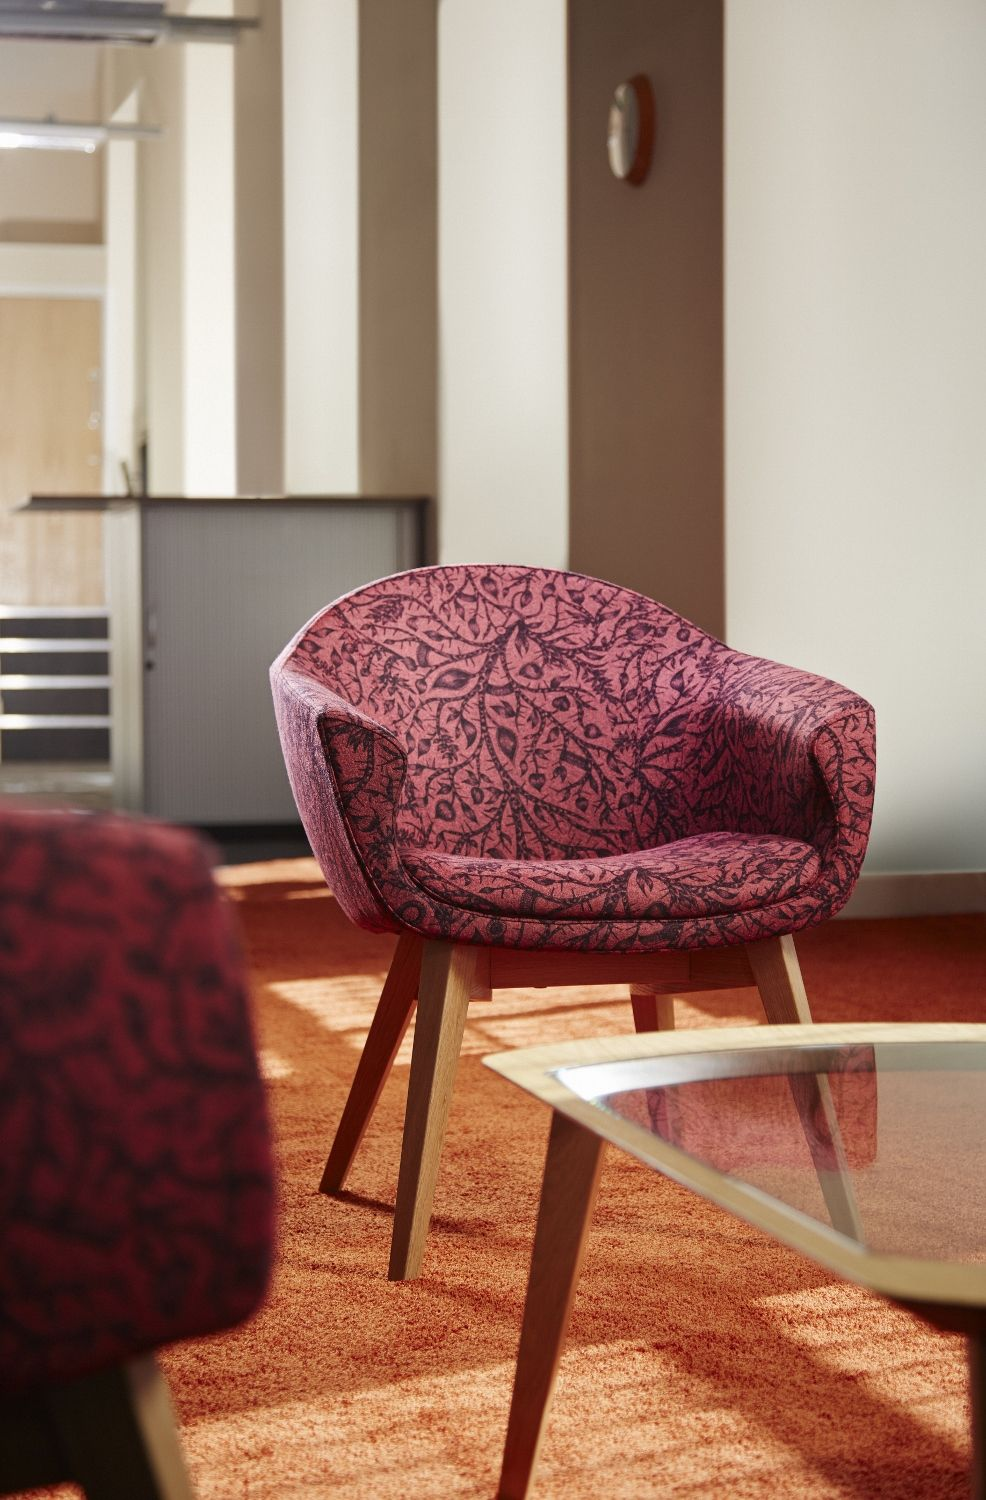 Mortimer Chairs In @Camira Fabrics Tangled Fabric By @Emma Zangs J Shipley